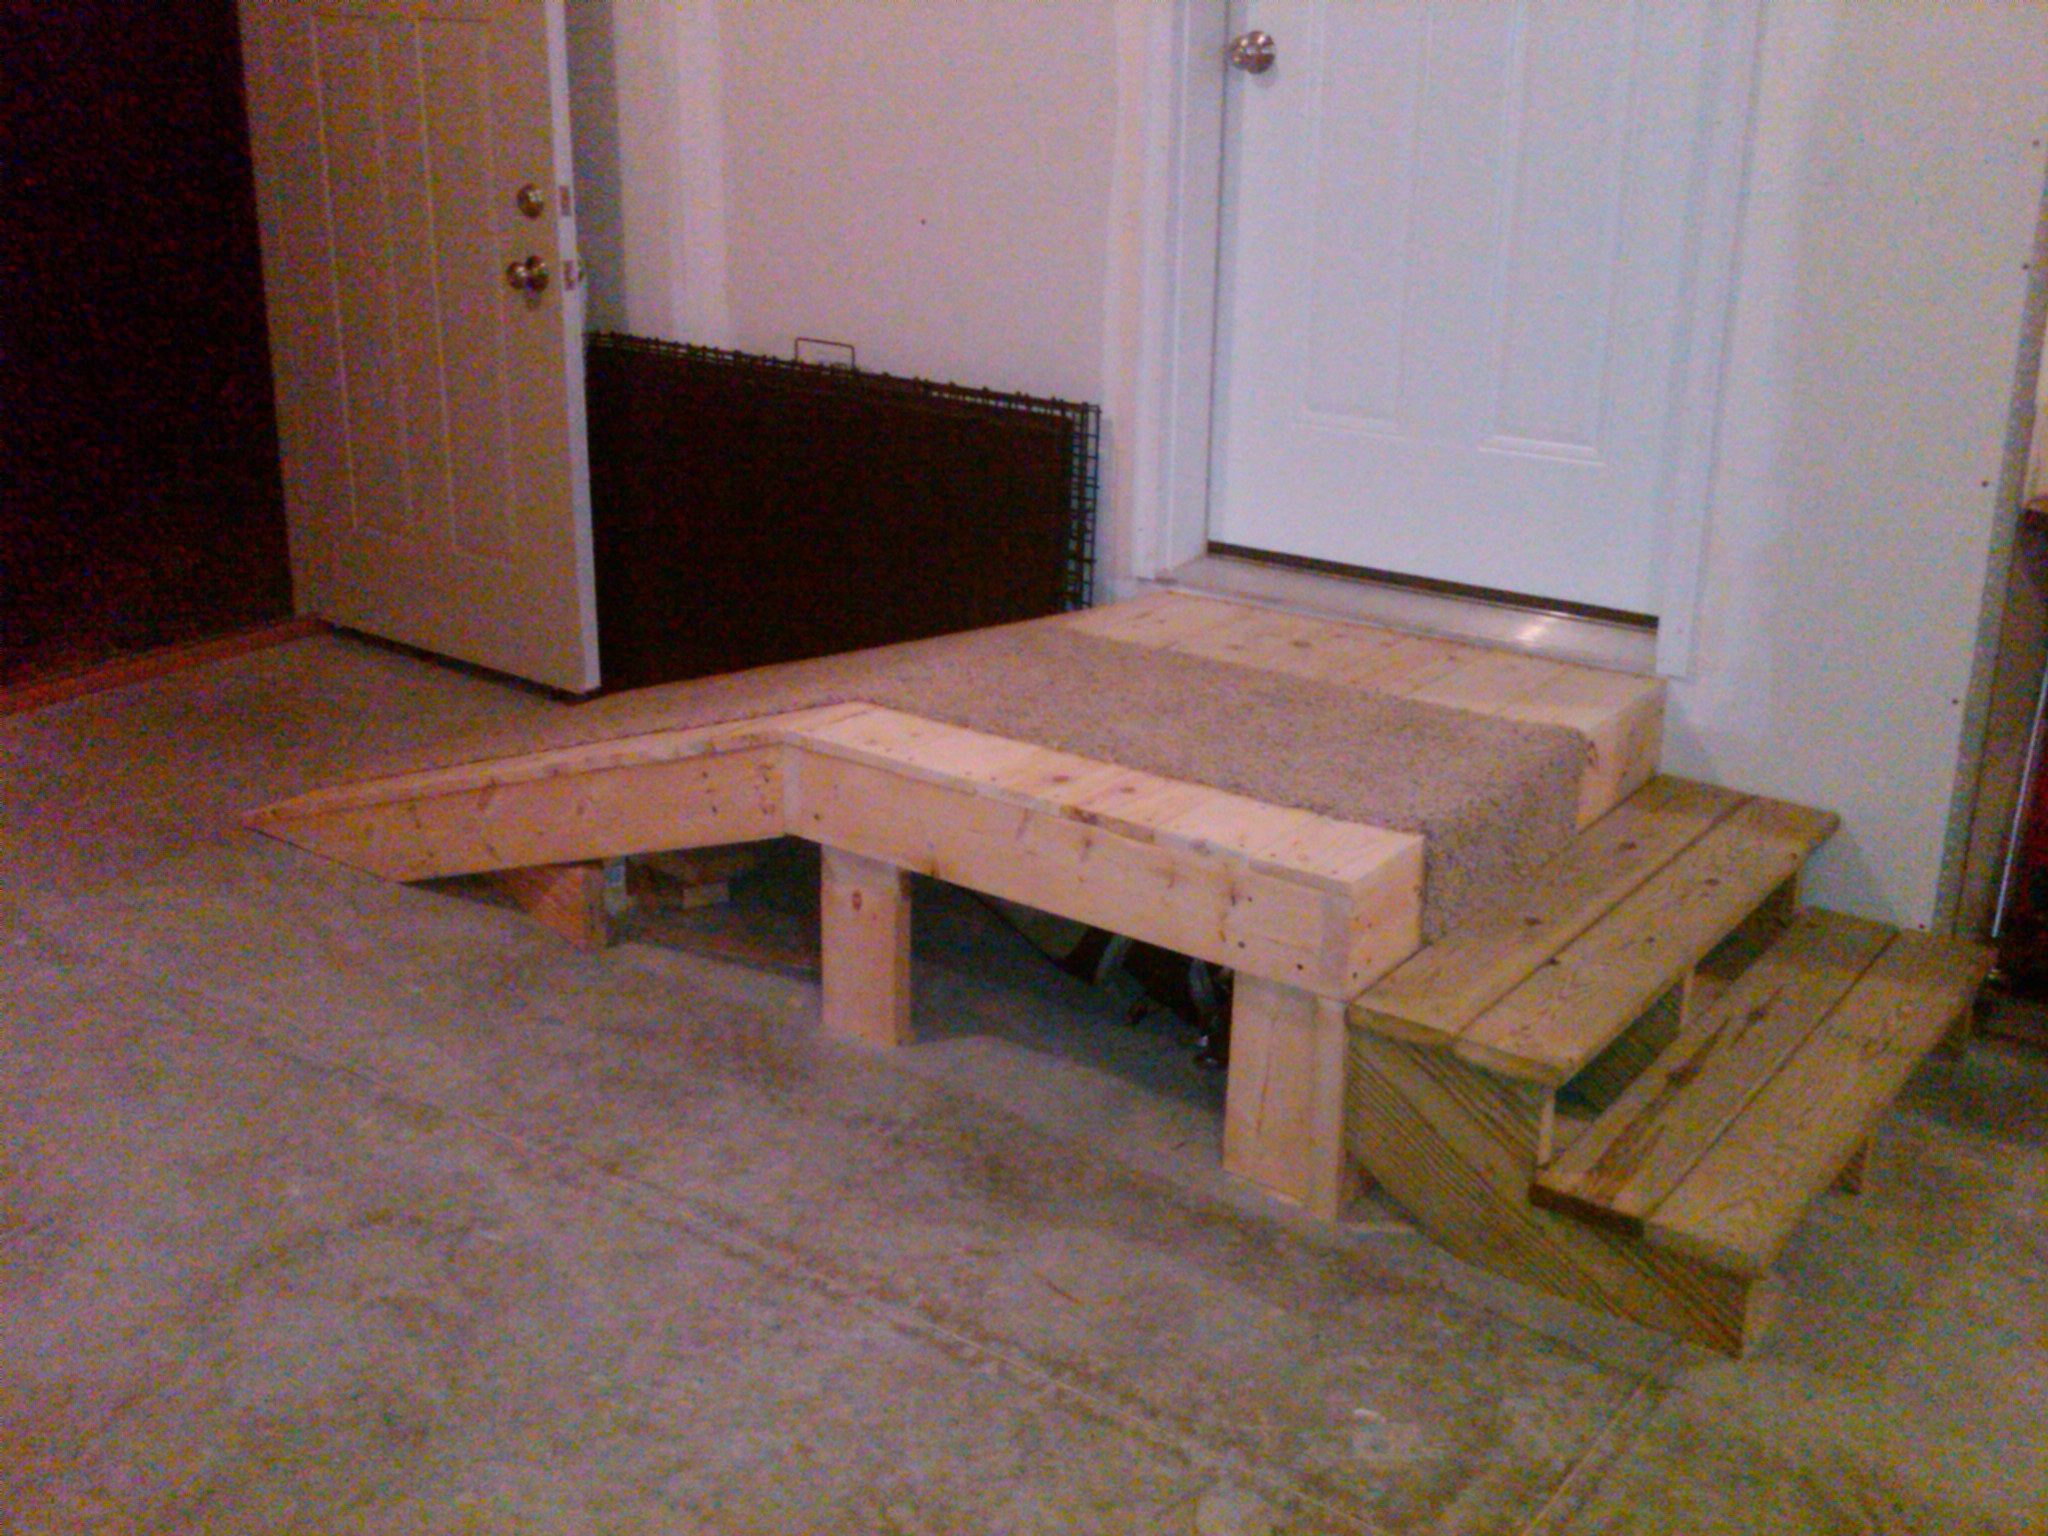 How To Build A Handicap Ramp >> PDF Plans Wood Dog Ramp Plans Download woodworking bed frame plans | psychotic81vqi